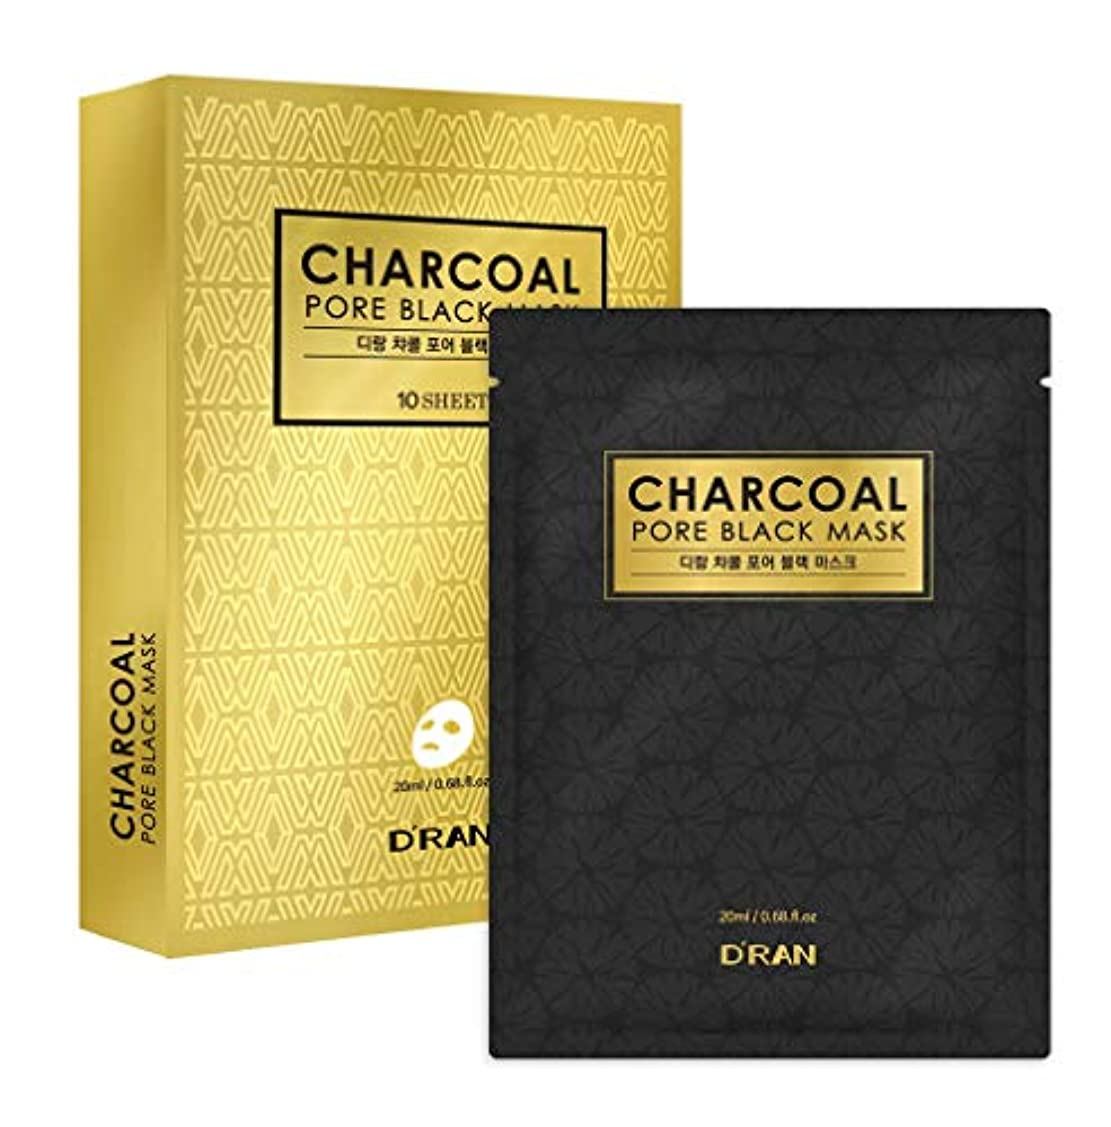 相談する司書包括的New Charcoal Pore Mask (1set_10pcs)